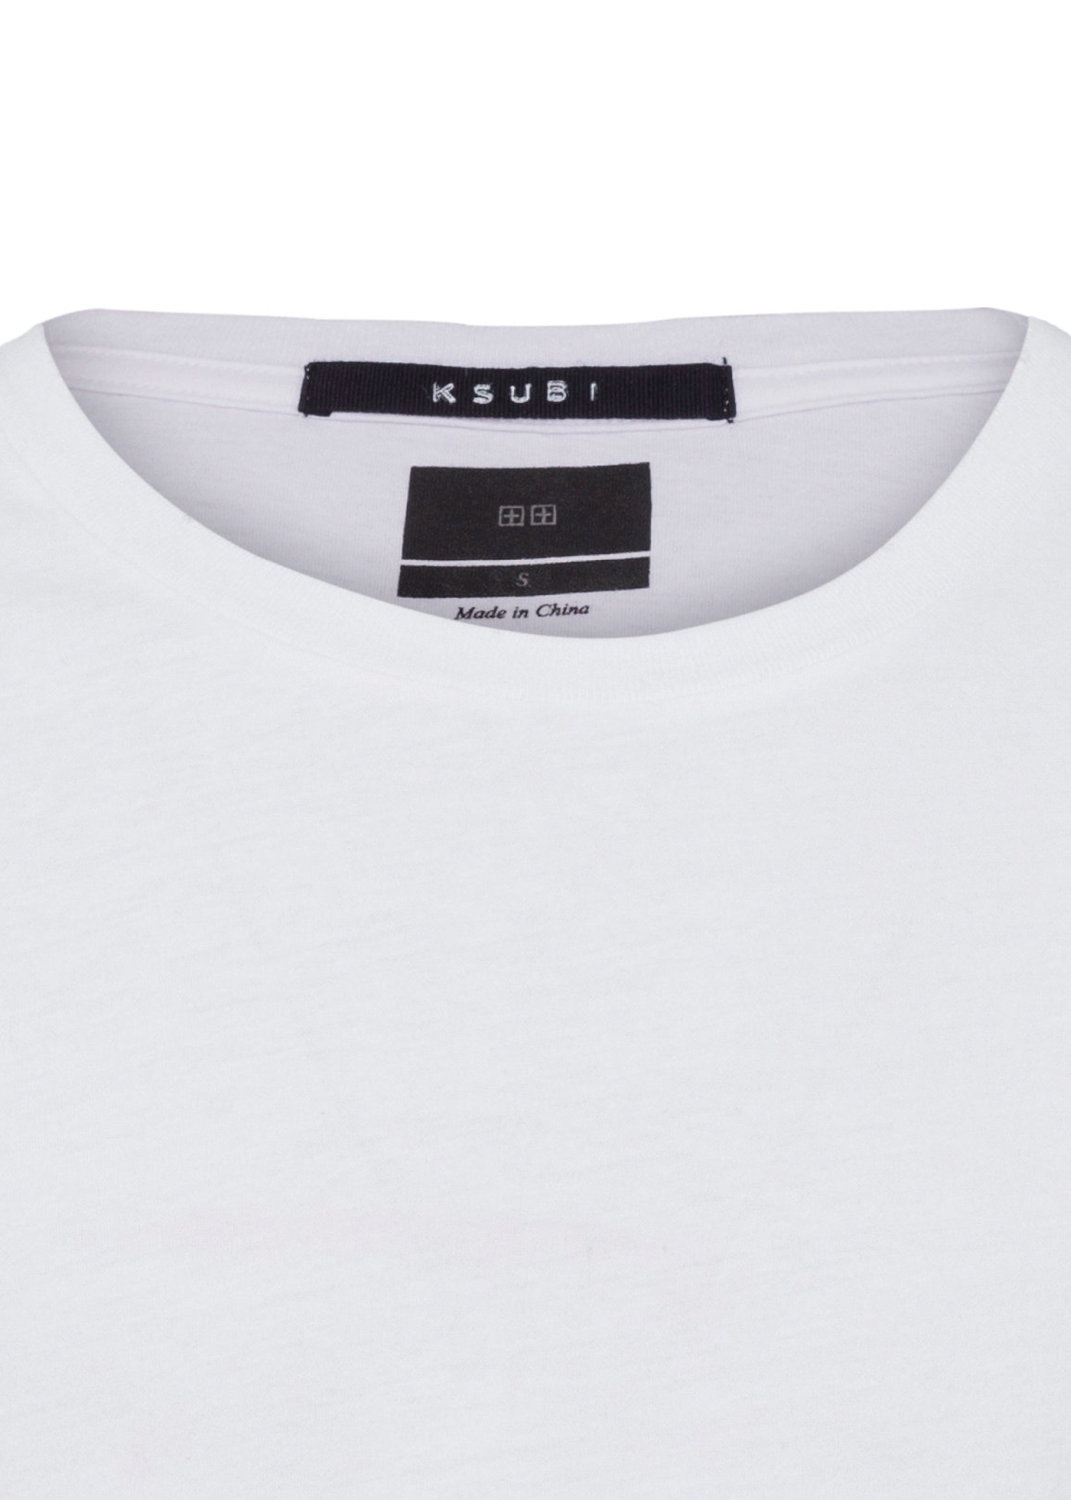 SIOUX SS TEE image number 2